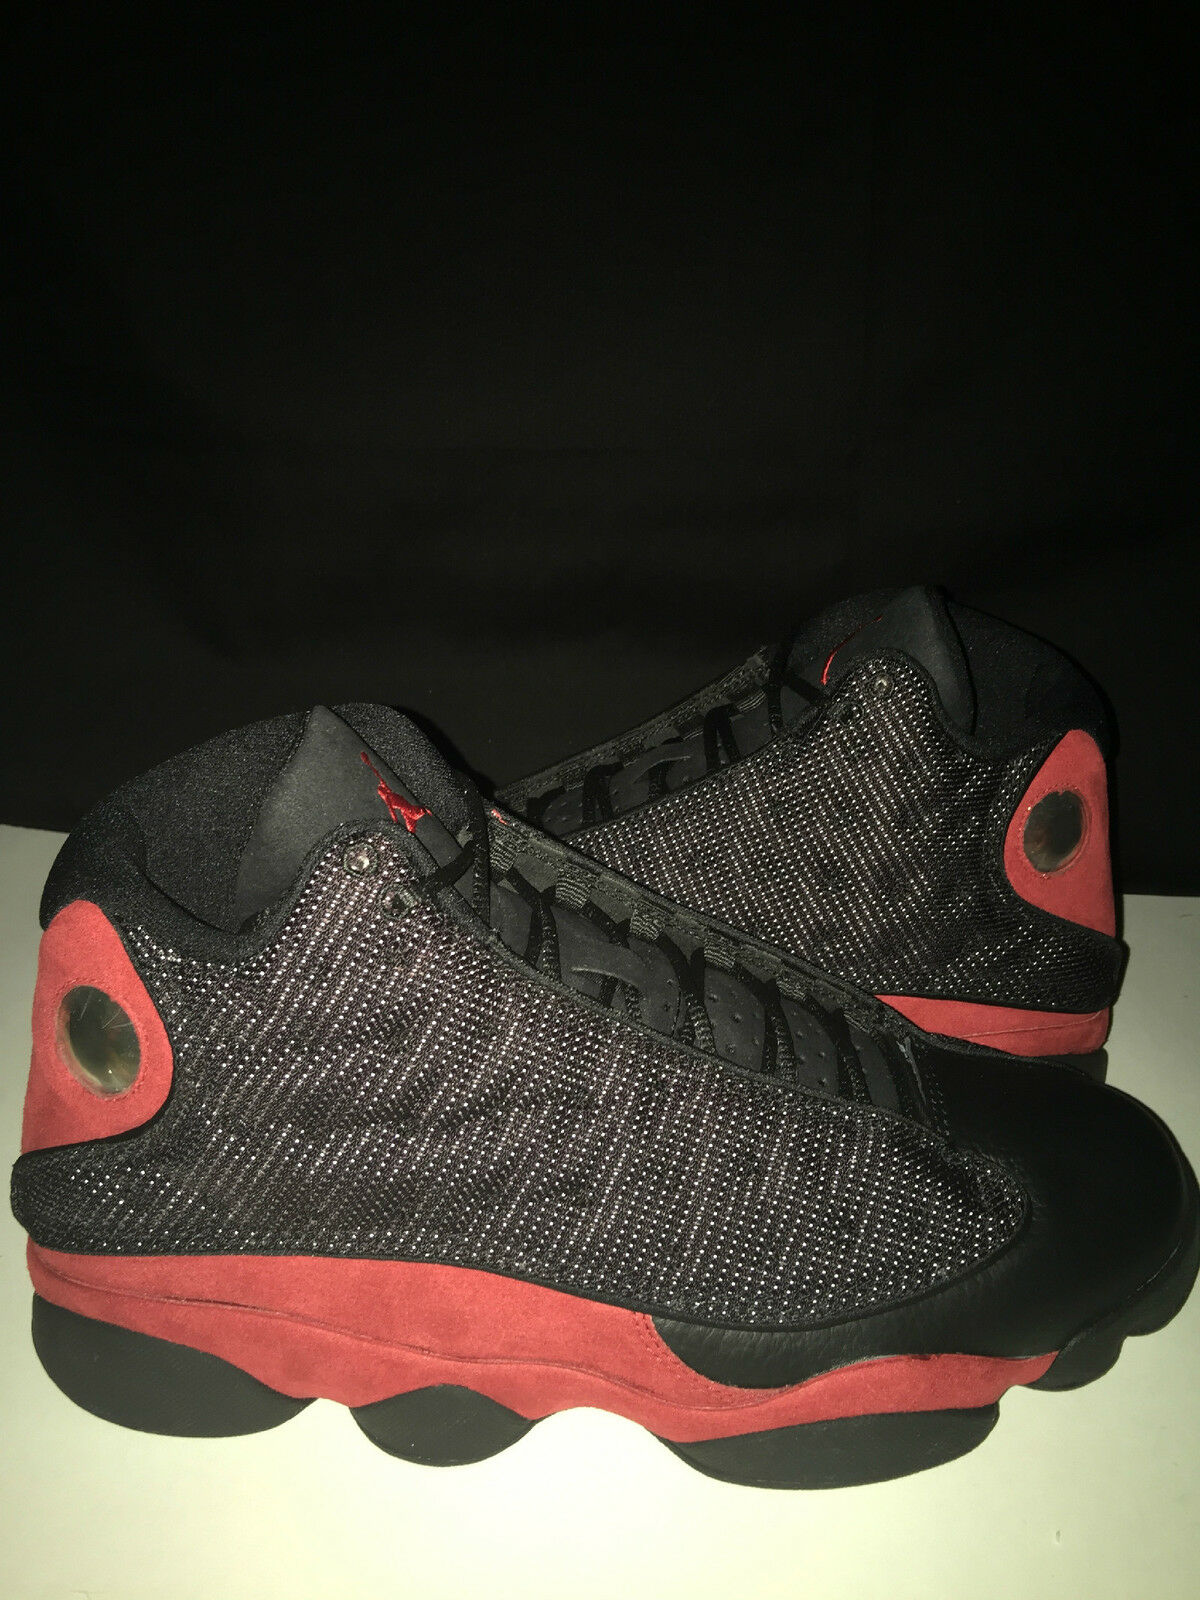 separation shoes 22c40 f0e39 NIKE NIKE NIKE AIR JORDAN 13 RETRO BLACK VARSITY RED-WHITE 414571 010 sz 9.5